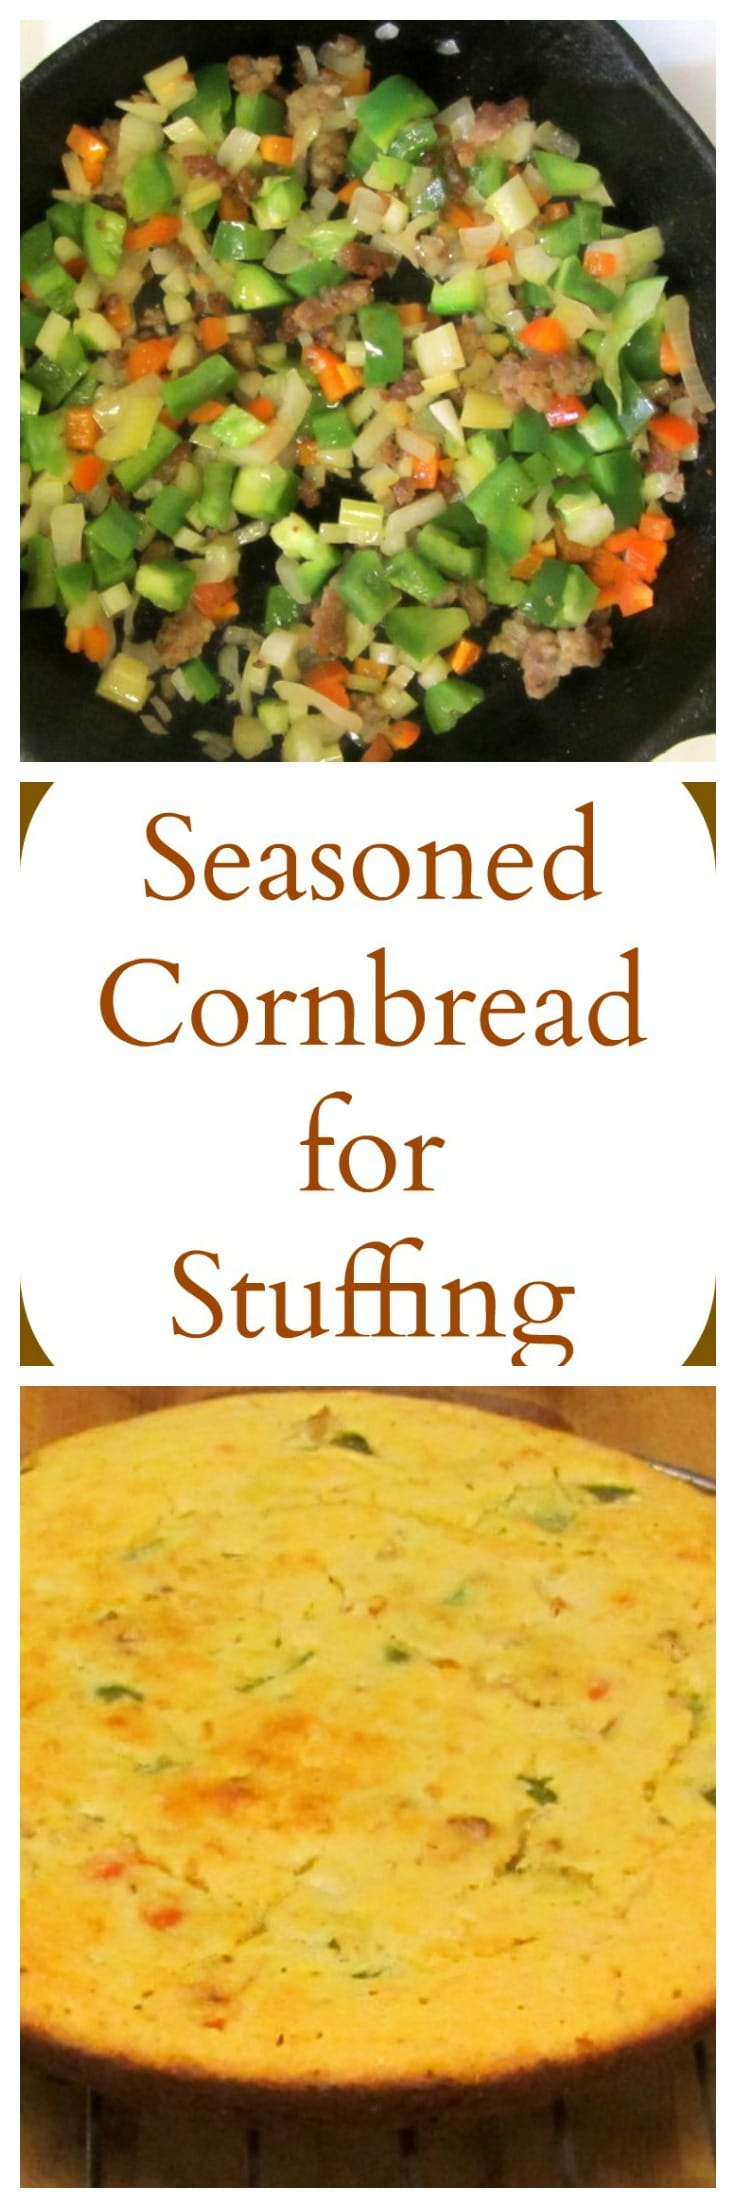 Cornbread baked for stuffing with sausage and aromatics baked right in. An easy and traditional, and gluten free, stuffing recipe.